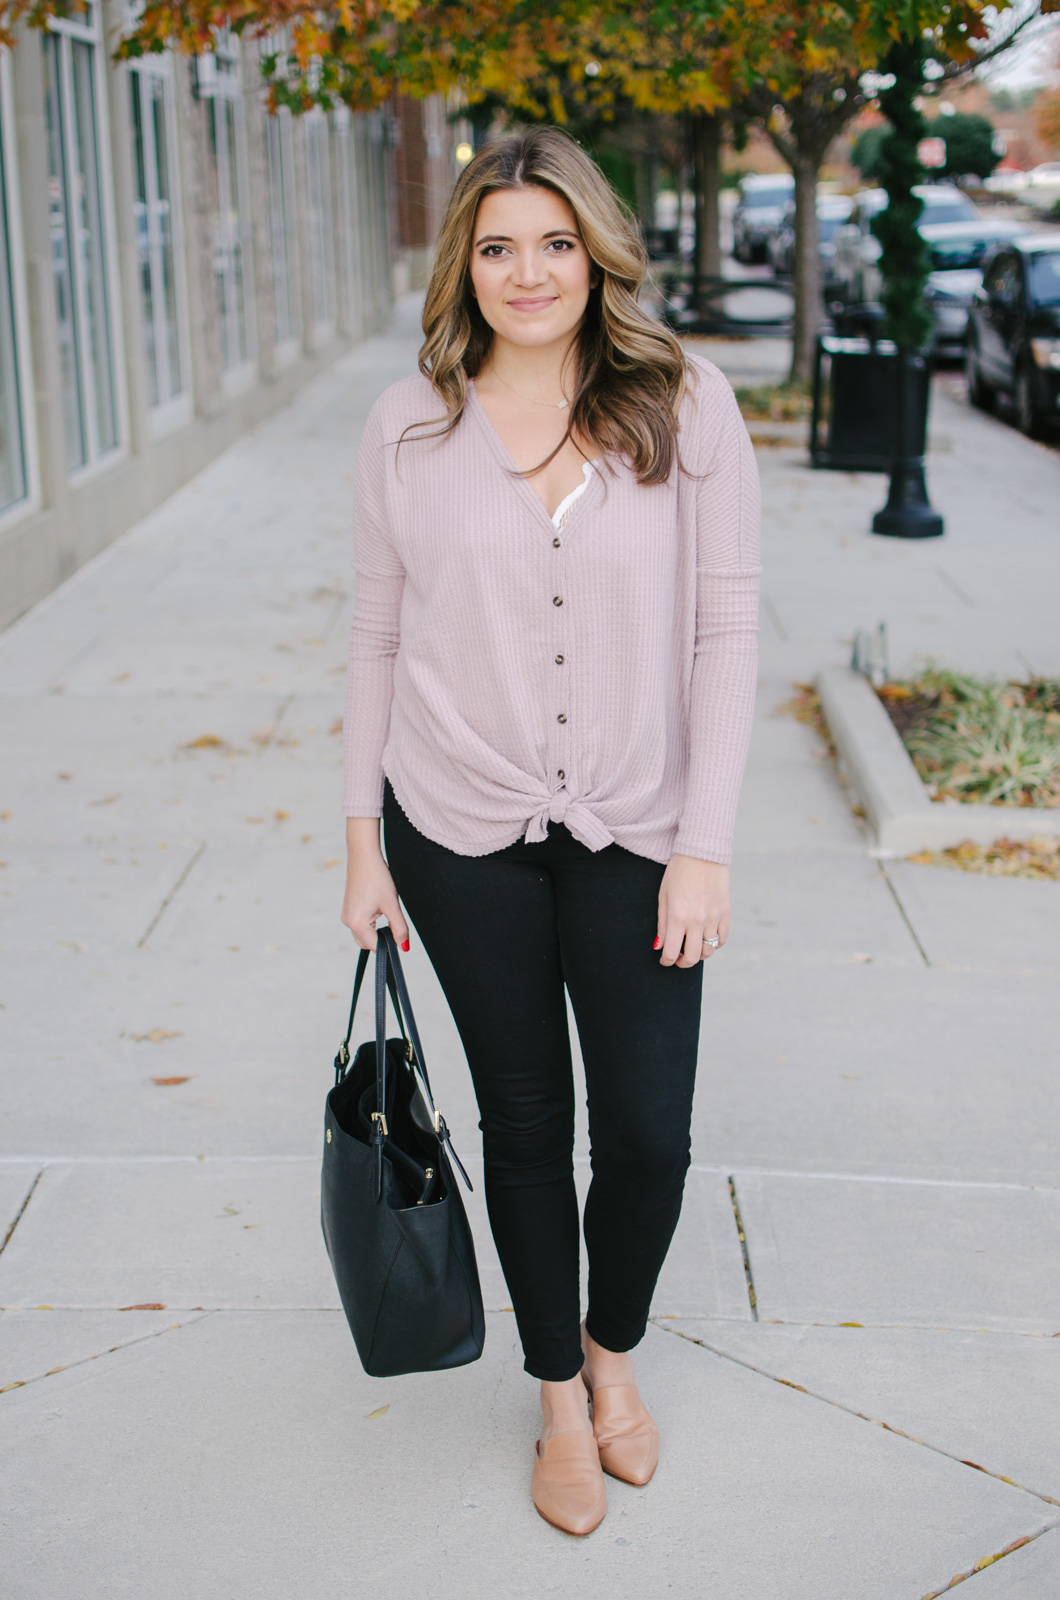 thermal shirt outfit idea - cute winter outfit idea | See more Winter outfit ideas or get outfit details by clicking through to bylaurenm.com!